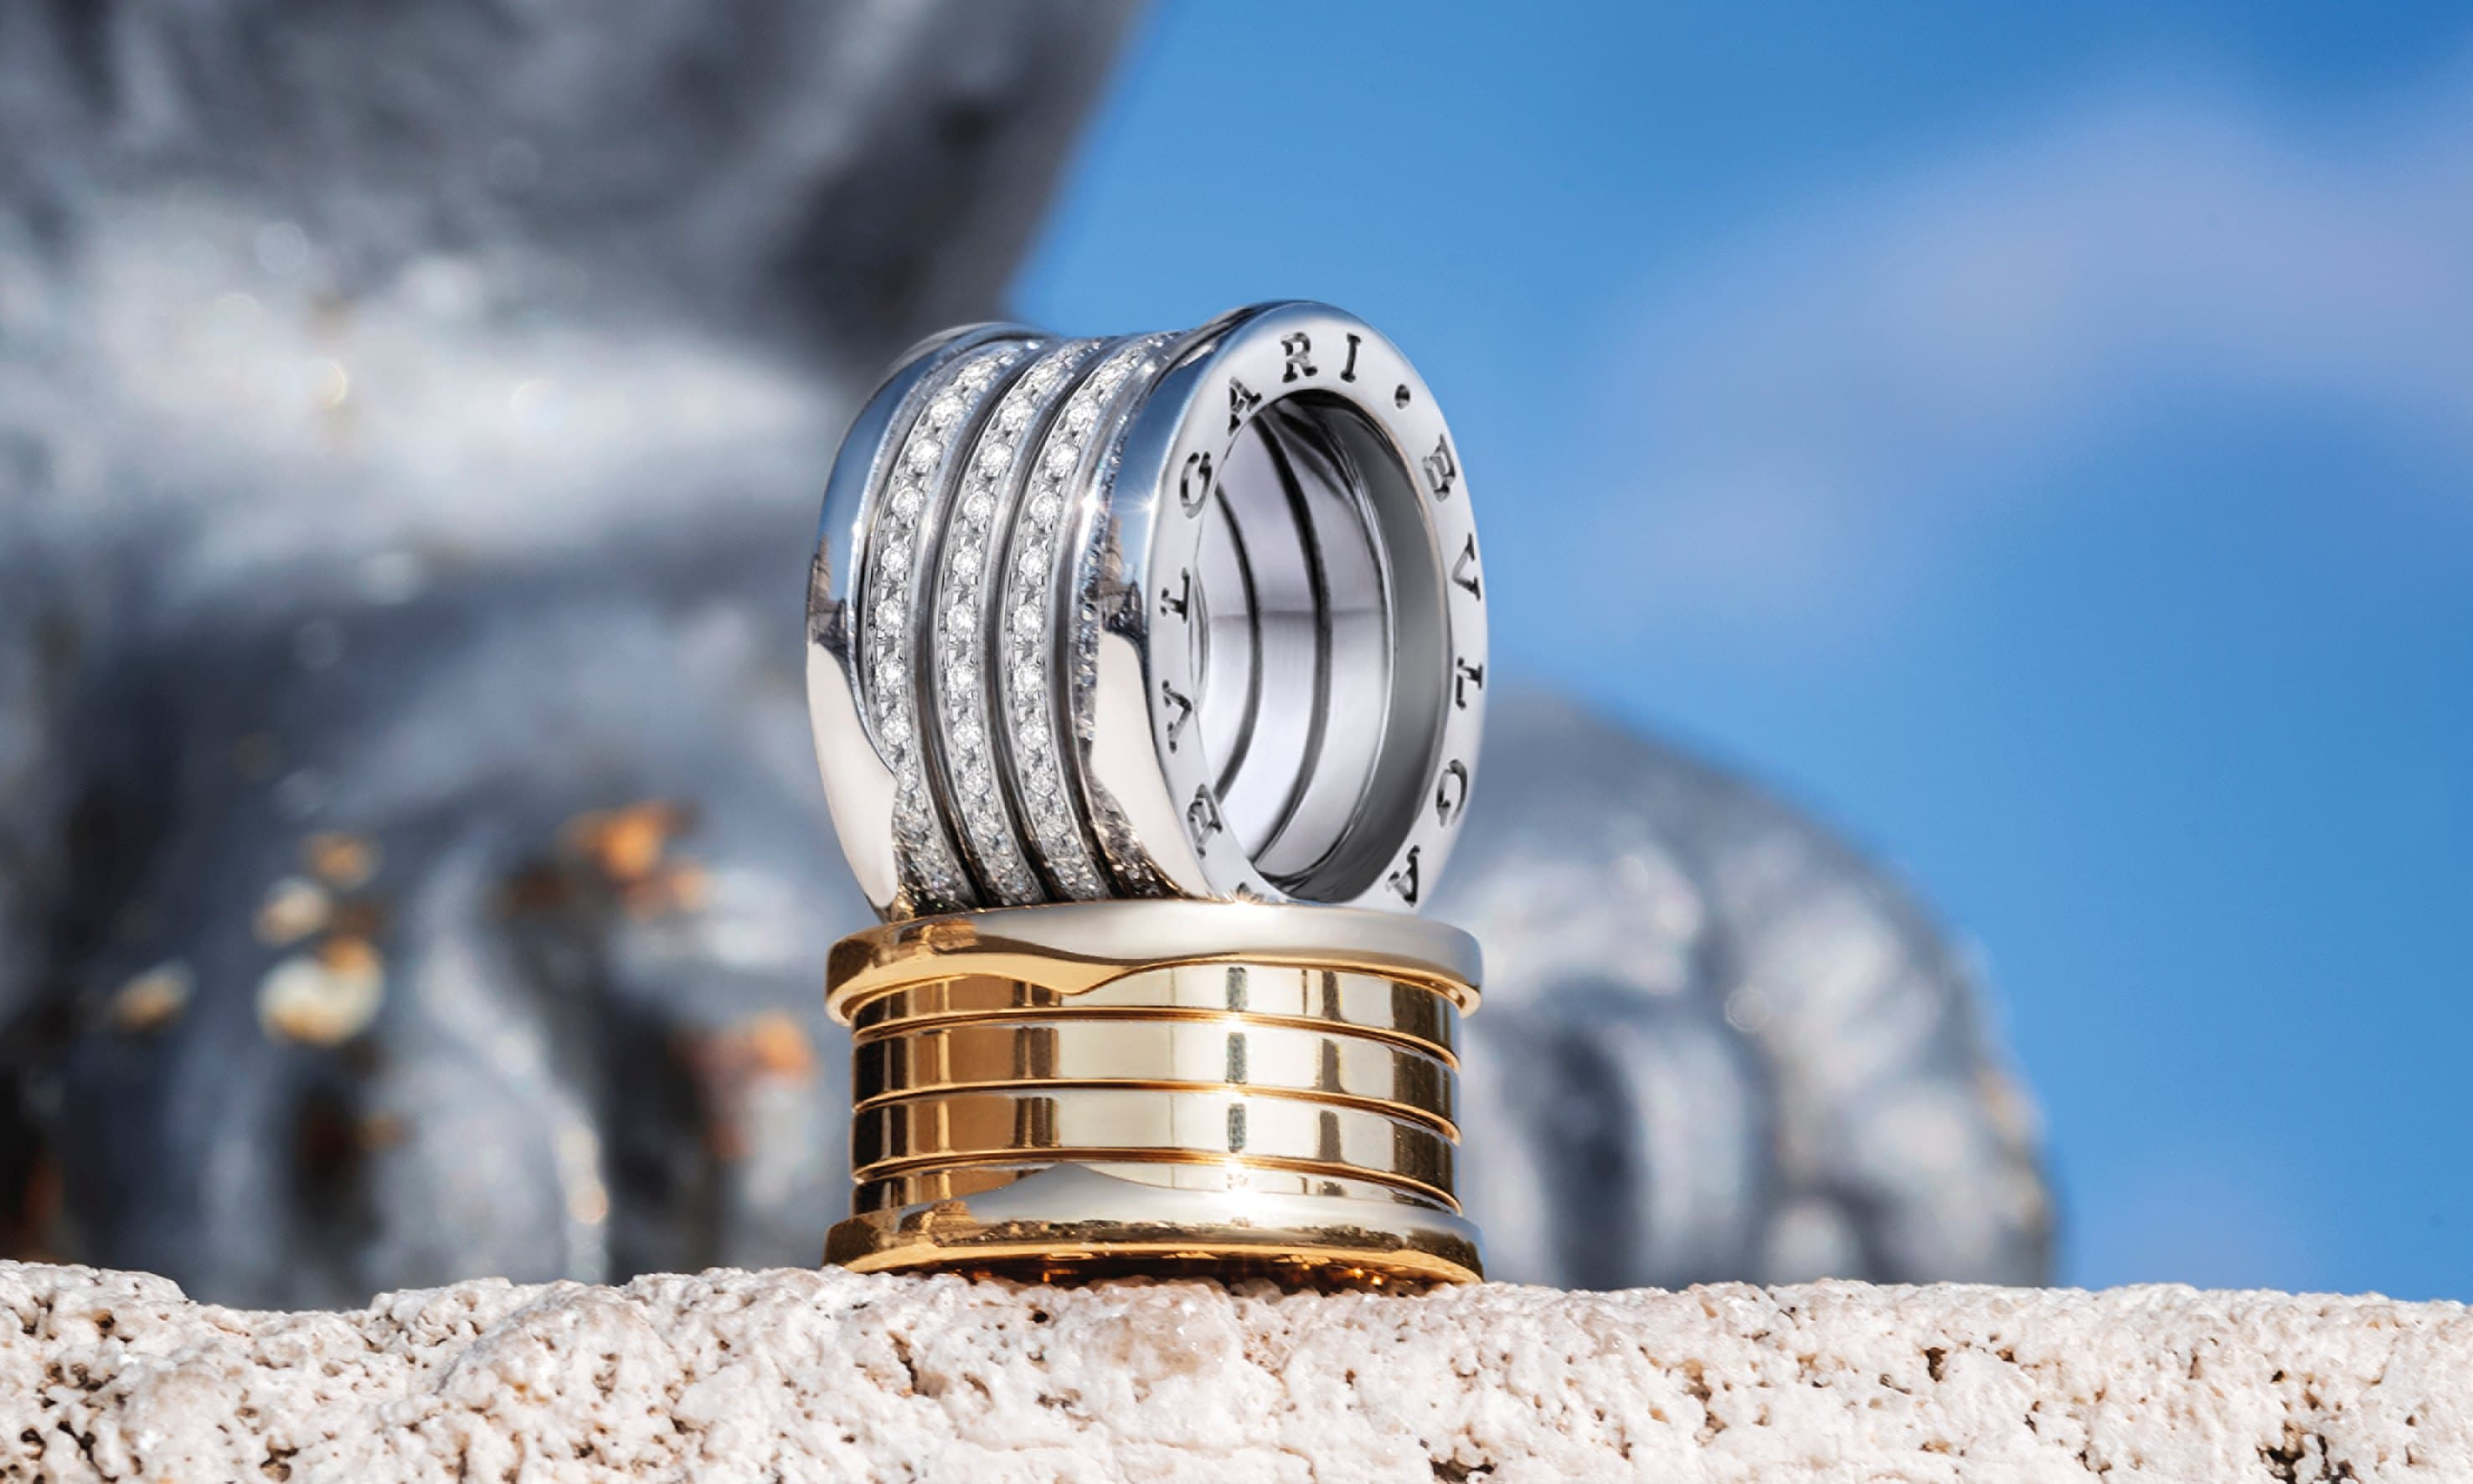 Bulgari's B.Zero1 collection goes back to its roots for its 20th anniversary